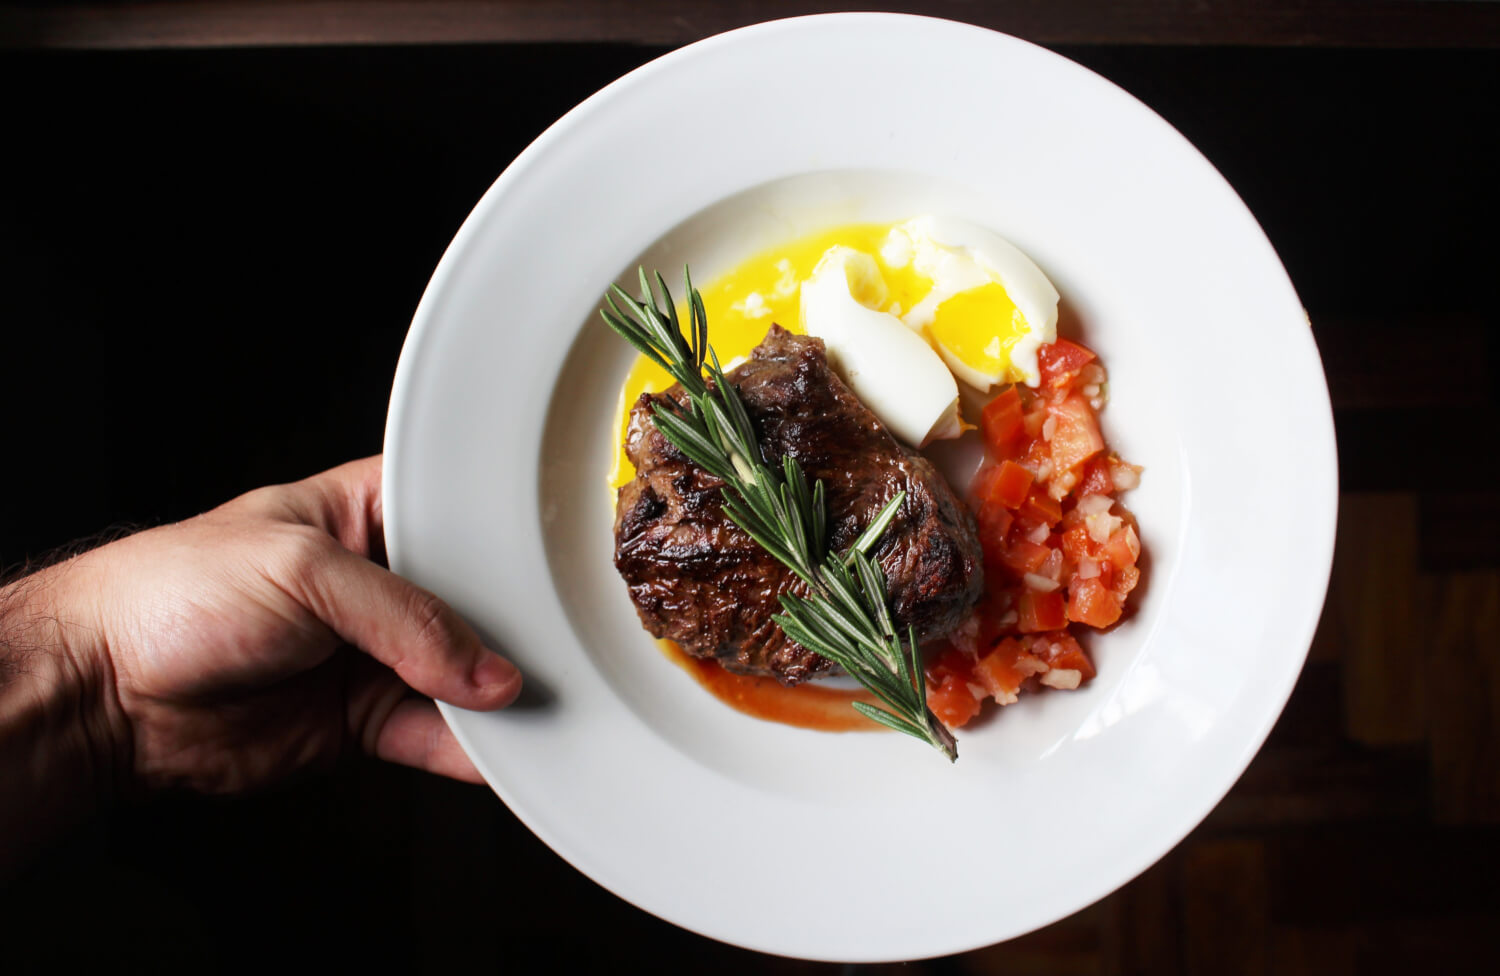 How to Use the Ketogenic Diet to Improve Body Composition